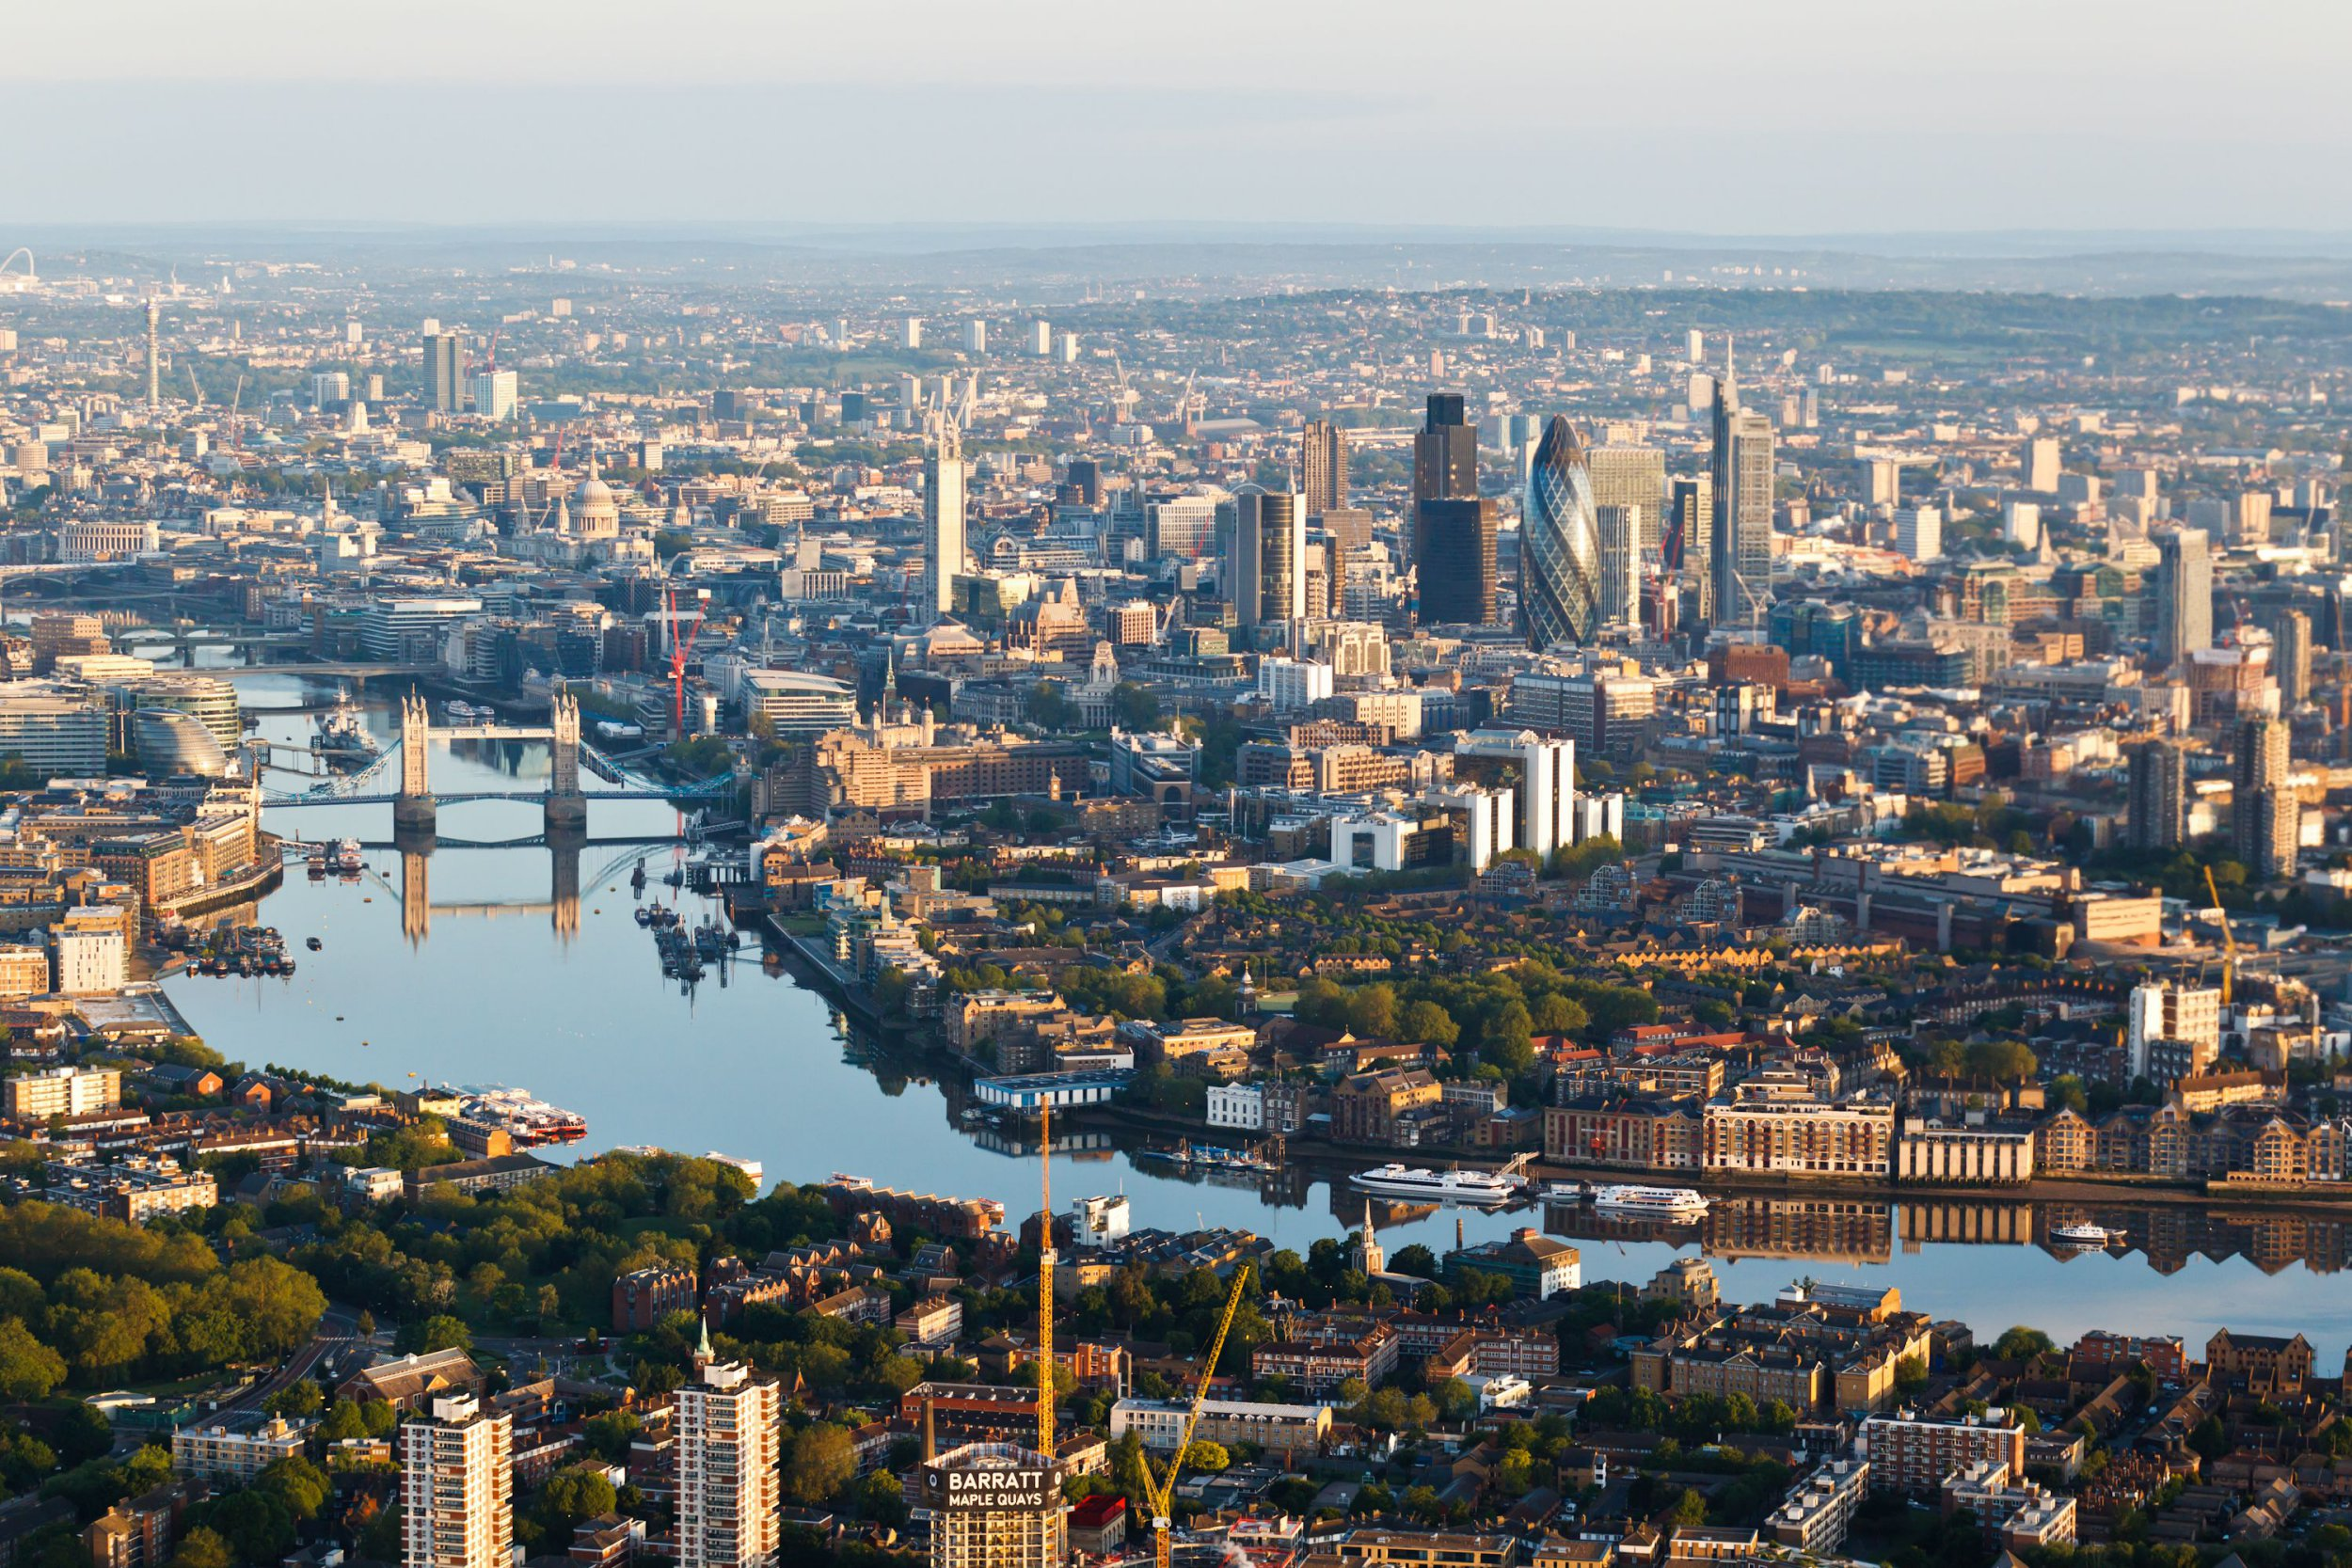 Mandatory Credit: Photo by High Level/REX/Shutterstock (1752147aj) An early morning aerial image looking West from Rotherhithe down the River Thames showing iconic buildings of the London skyline. London. Aerial photos of Britain - 2012